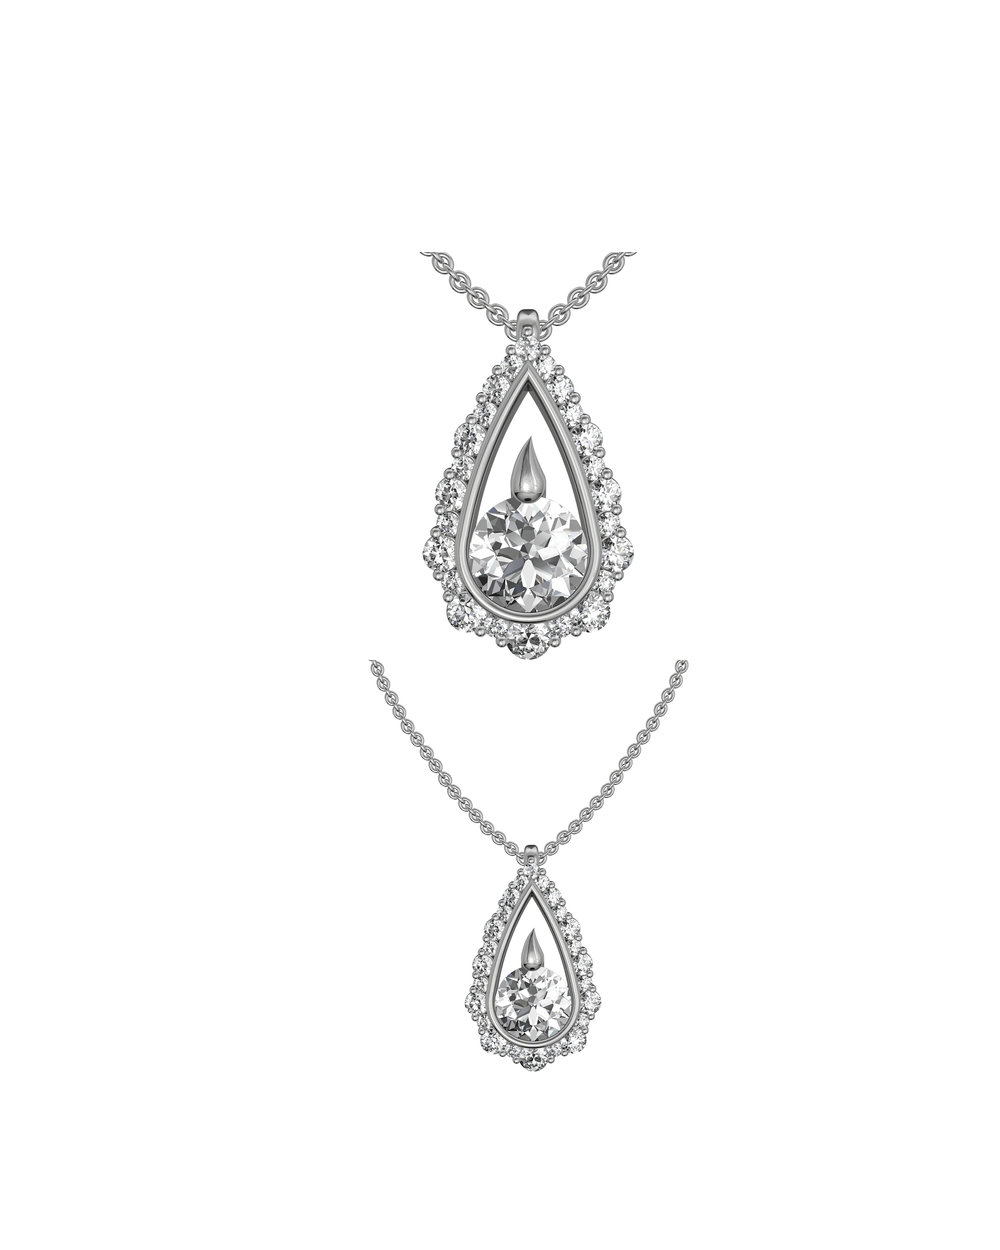 designer diamond bridal jewelry-41214.jpg